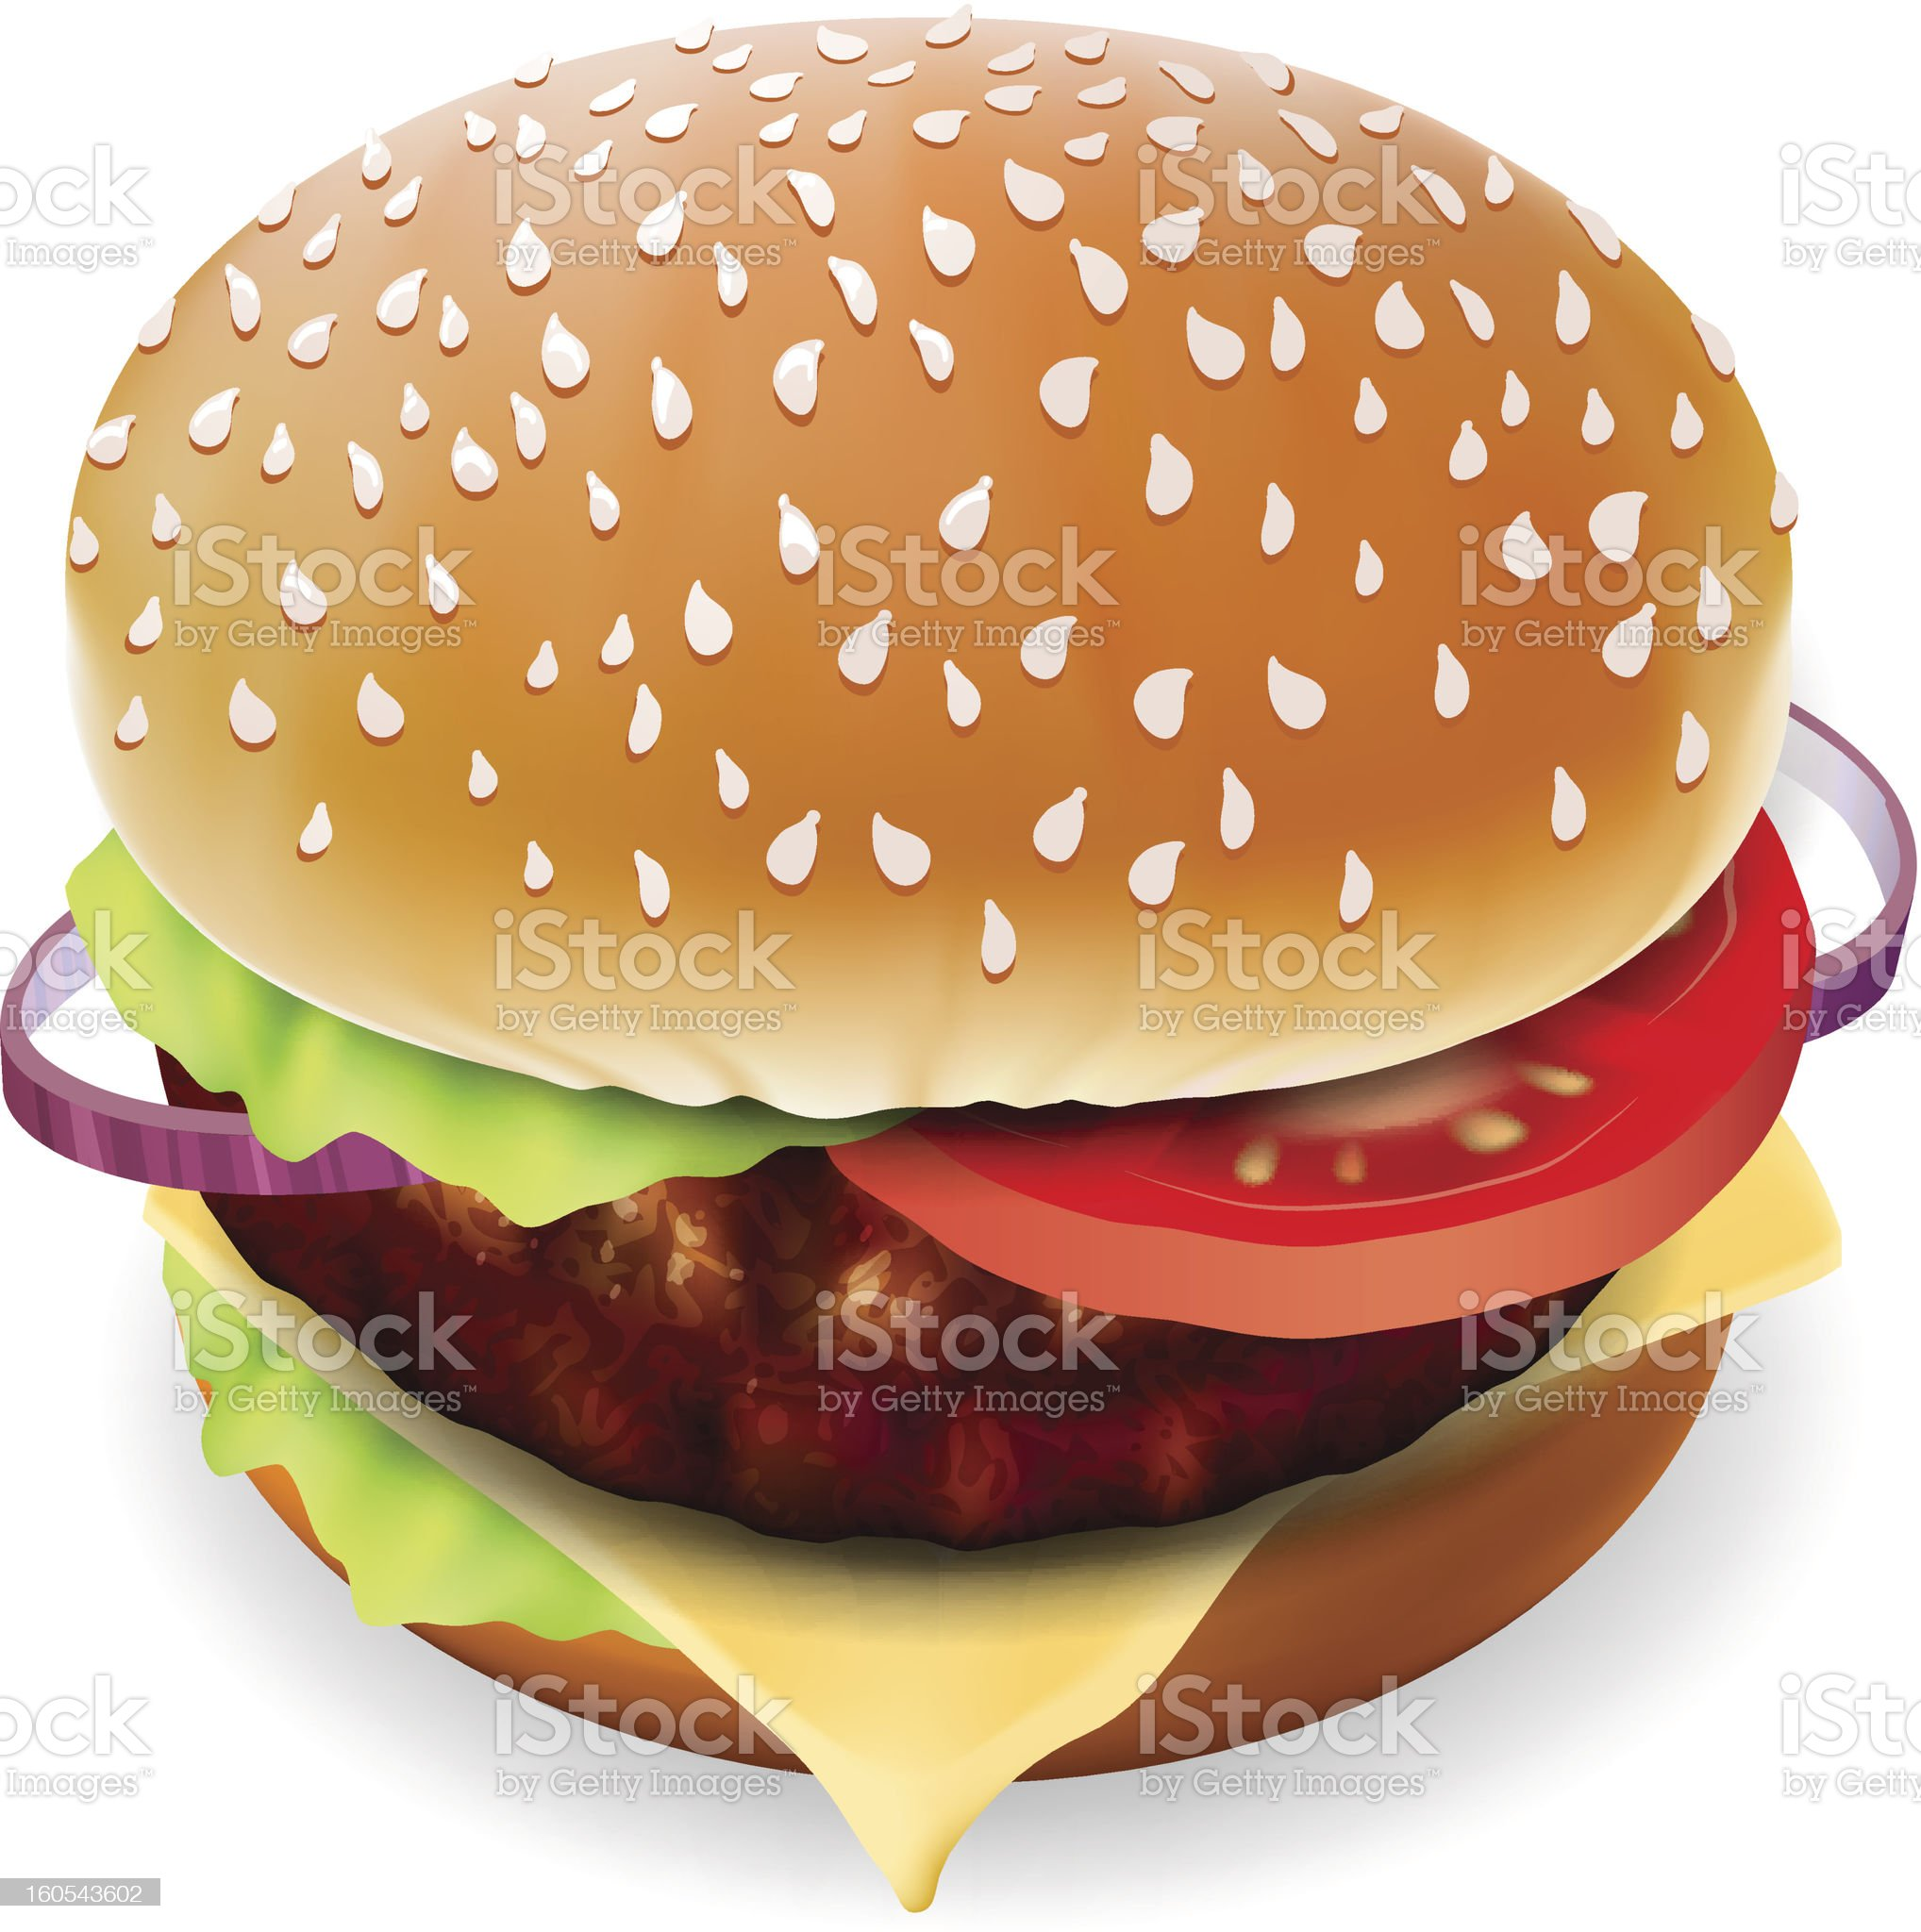 Hamburger with meat, lettuce, cheese and tomato. royalty-free stock vector art